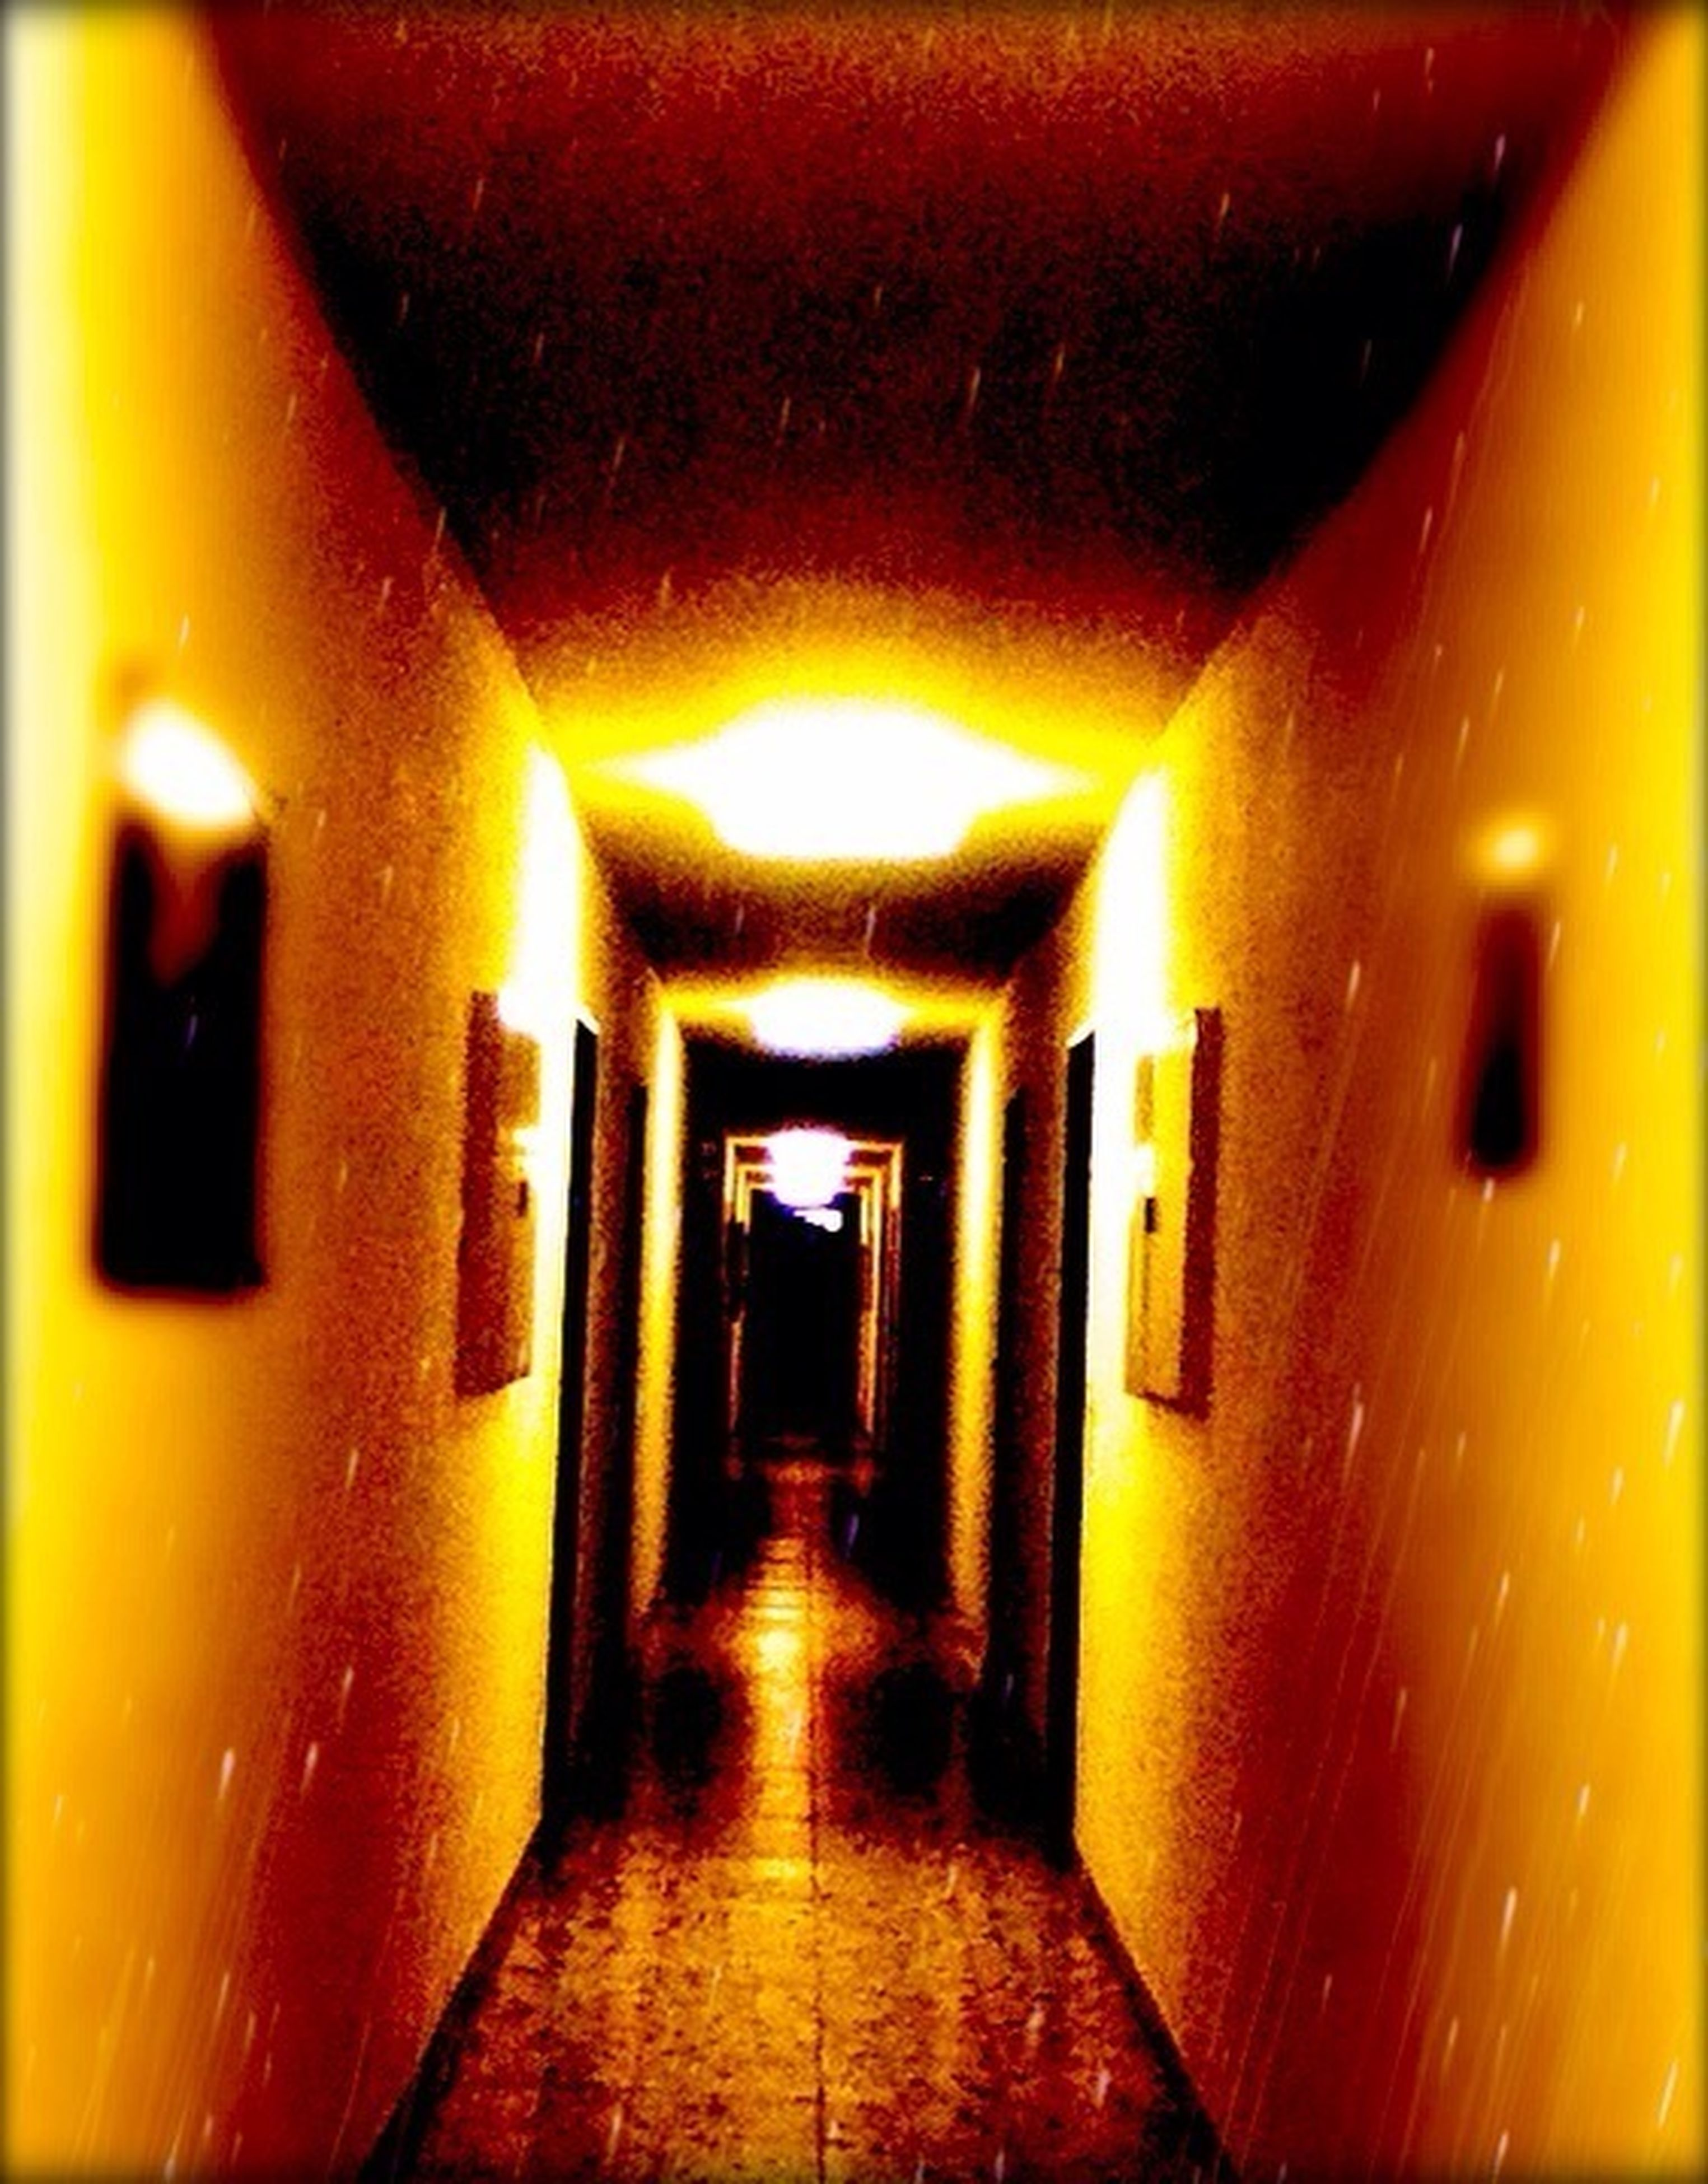 illuminated, architecture, the way forward, lighting equipment, built structure, indoors, diminishing perspective, night, empty, wall - building feature, orange color, corridor, light - natural phenomenon, vanishing point, glowing, yellow, electric light, lit, in a row, no people